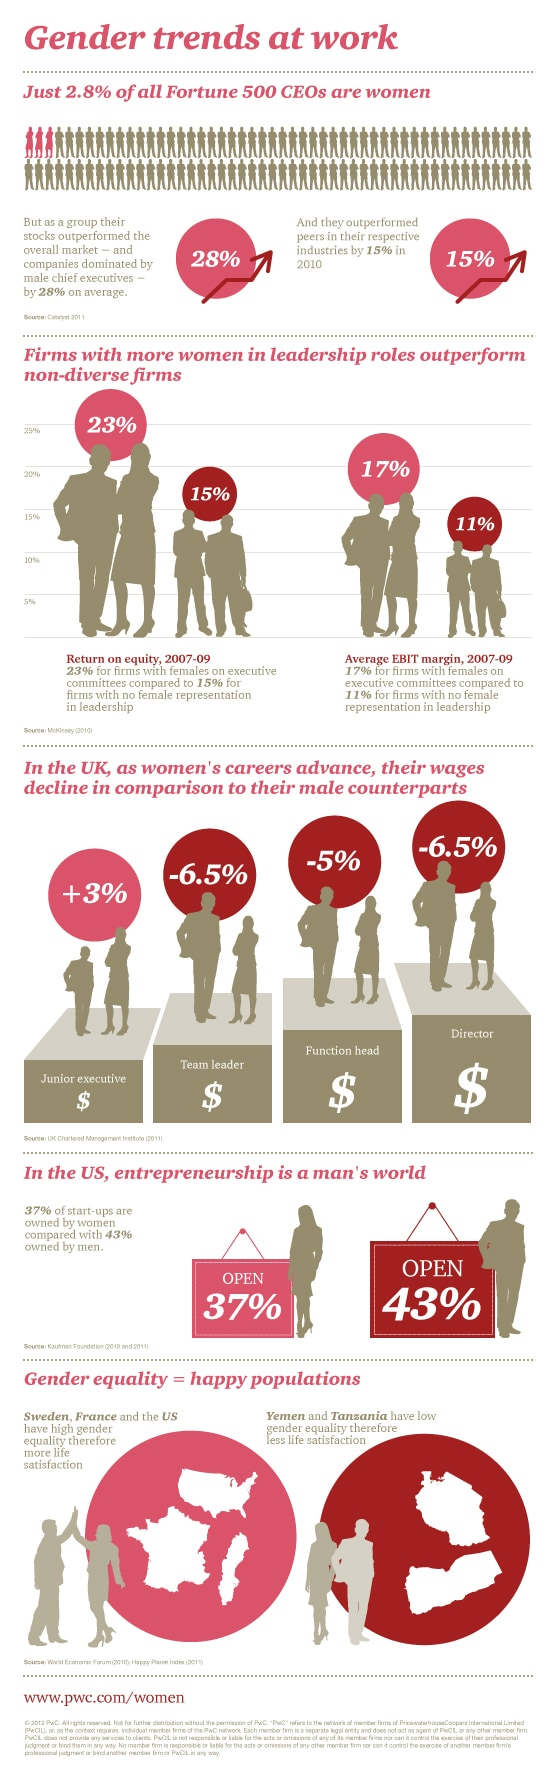 Gender Trends At Work infographic